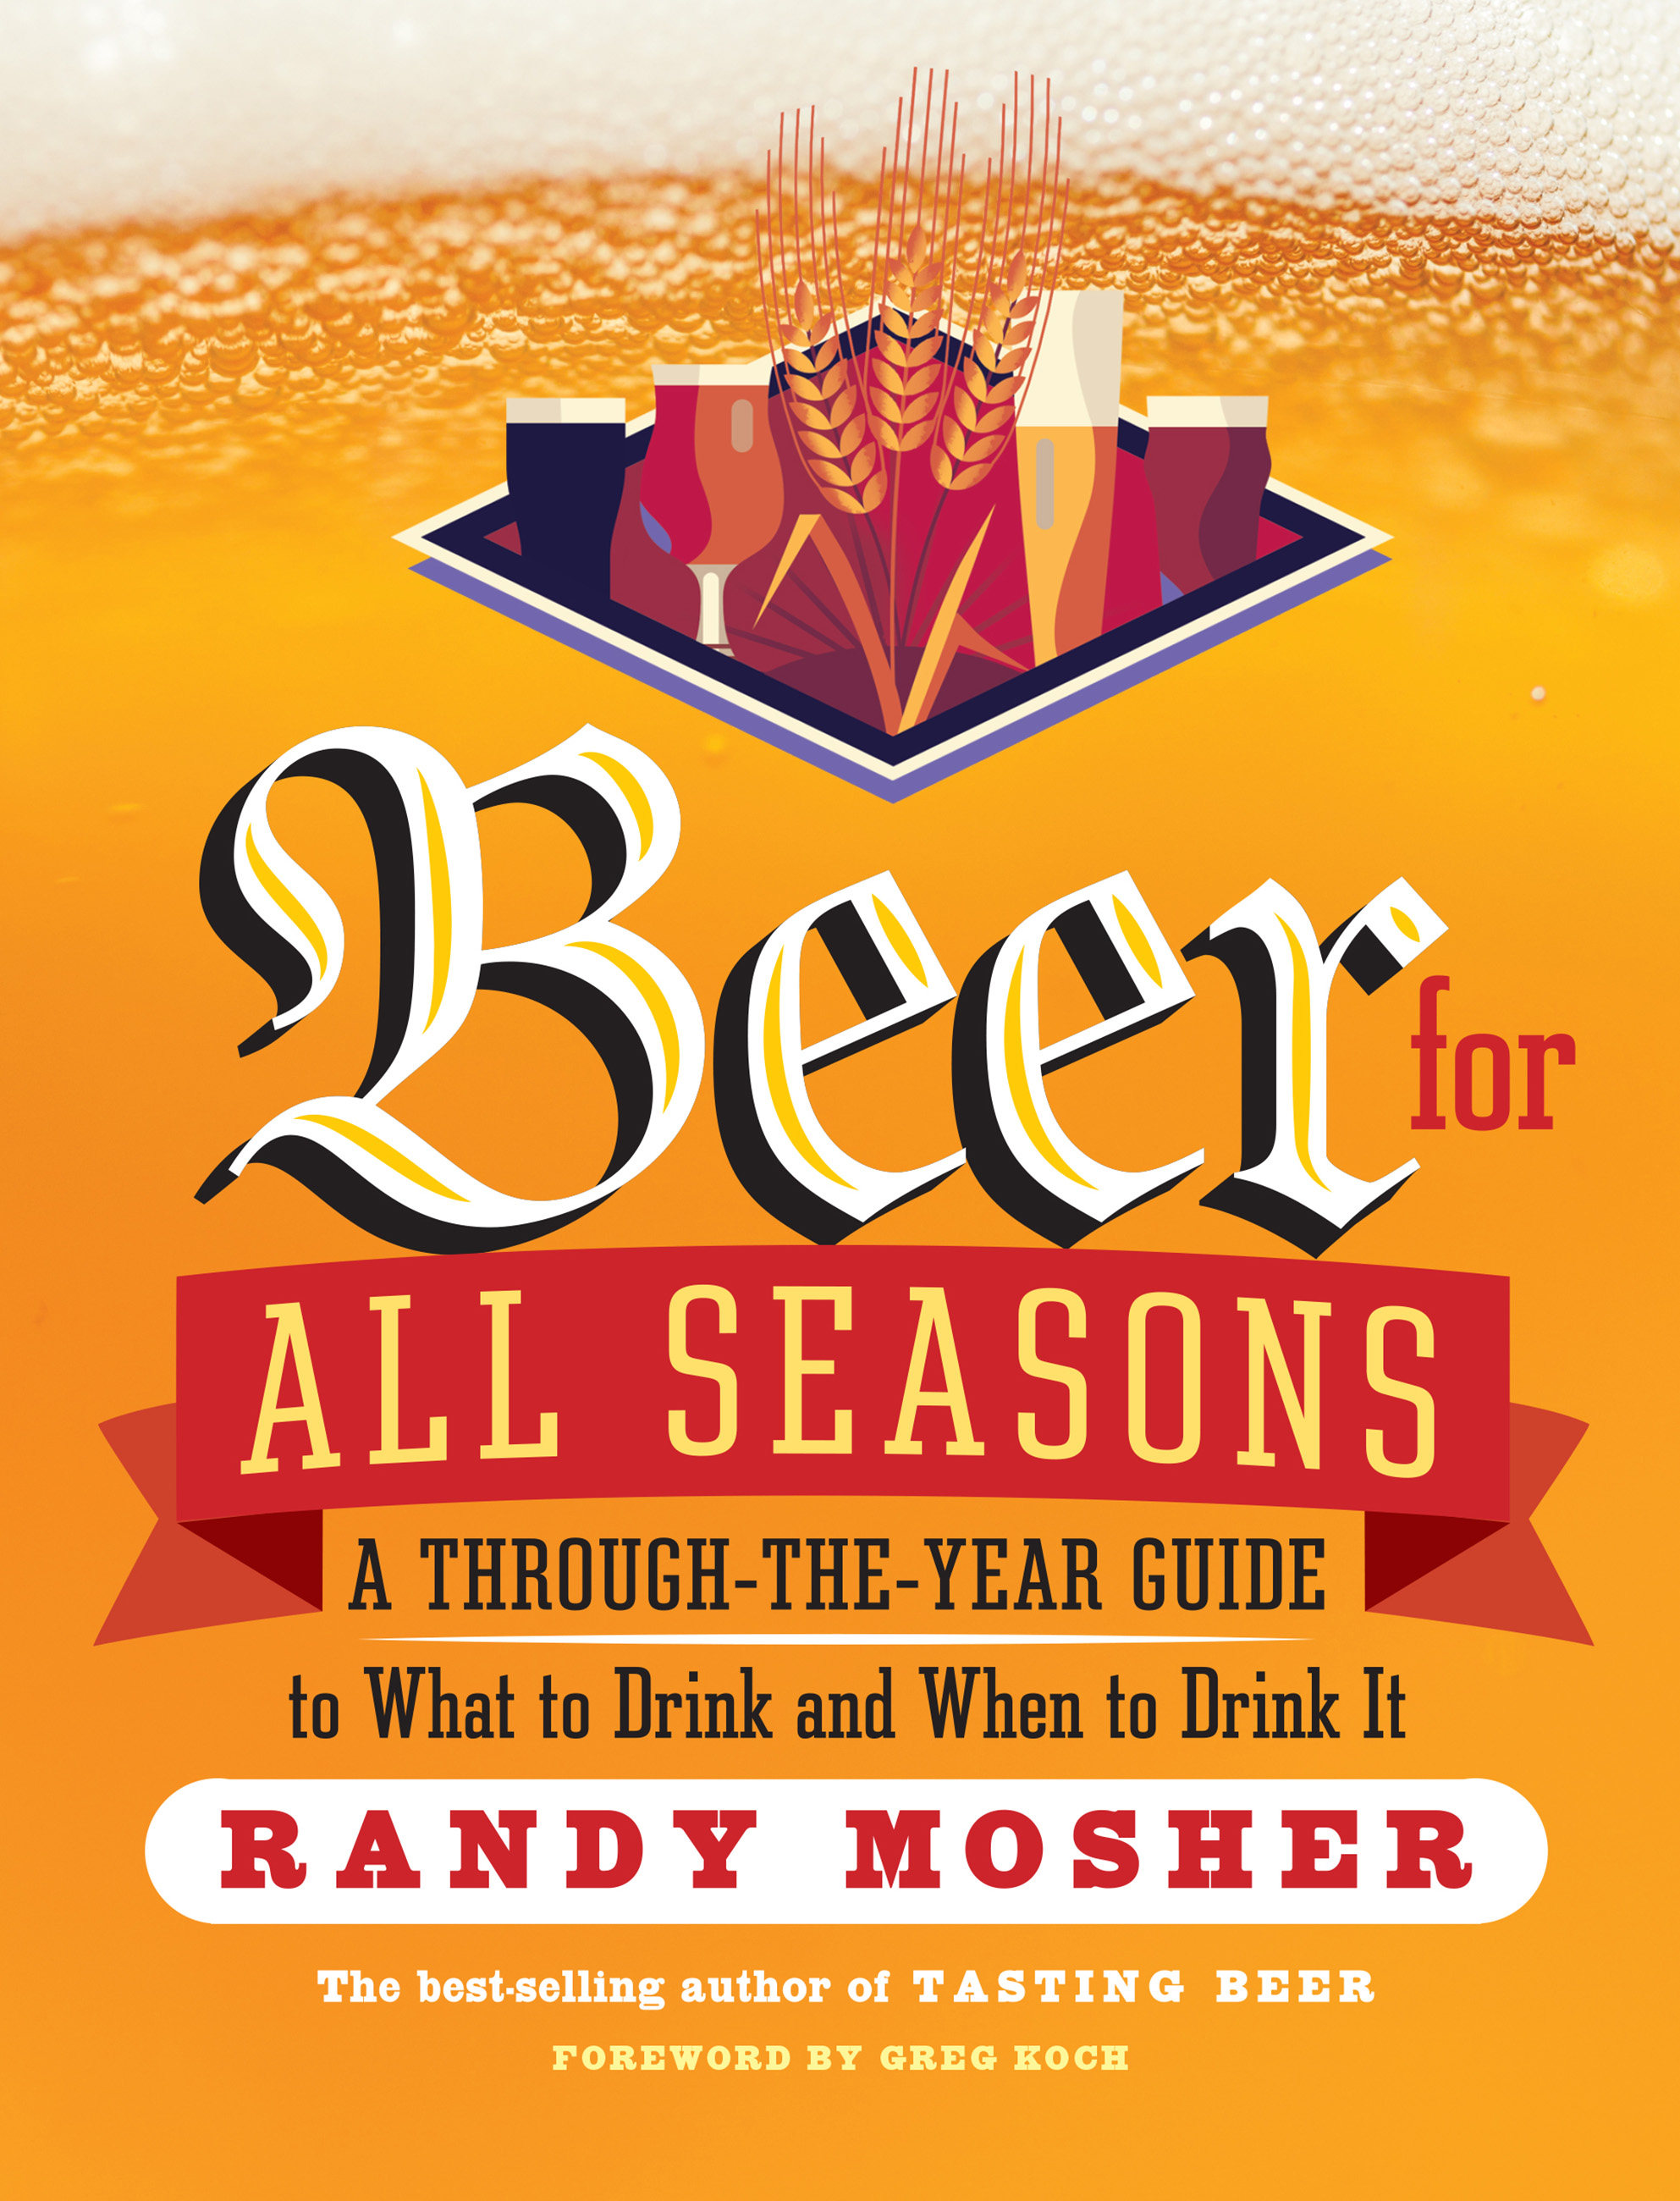 Beer for All Seasons A Through-the-Year Guide to What to Drink and When to Drink It